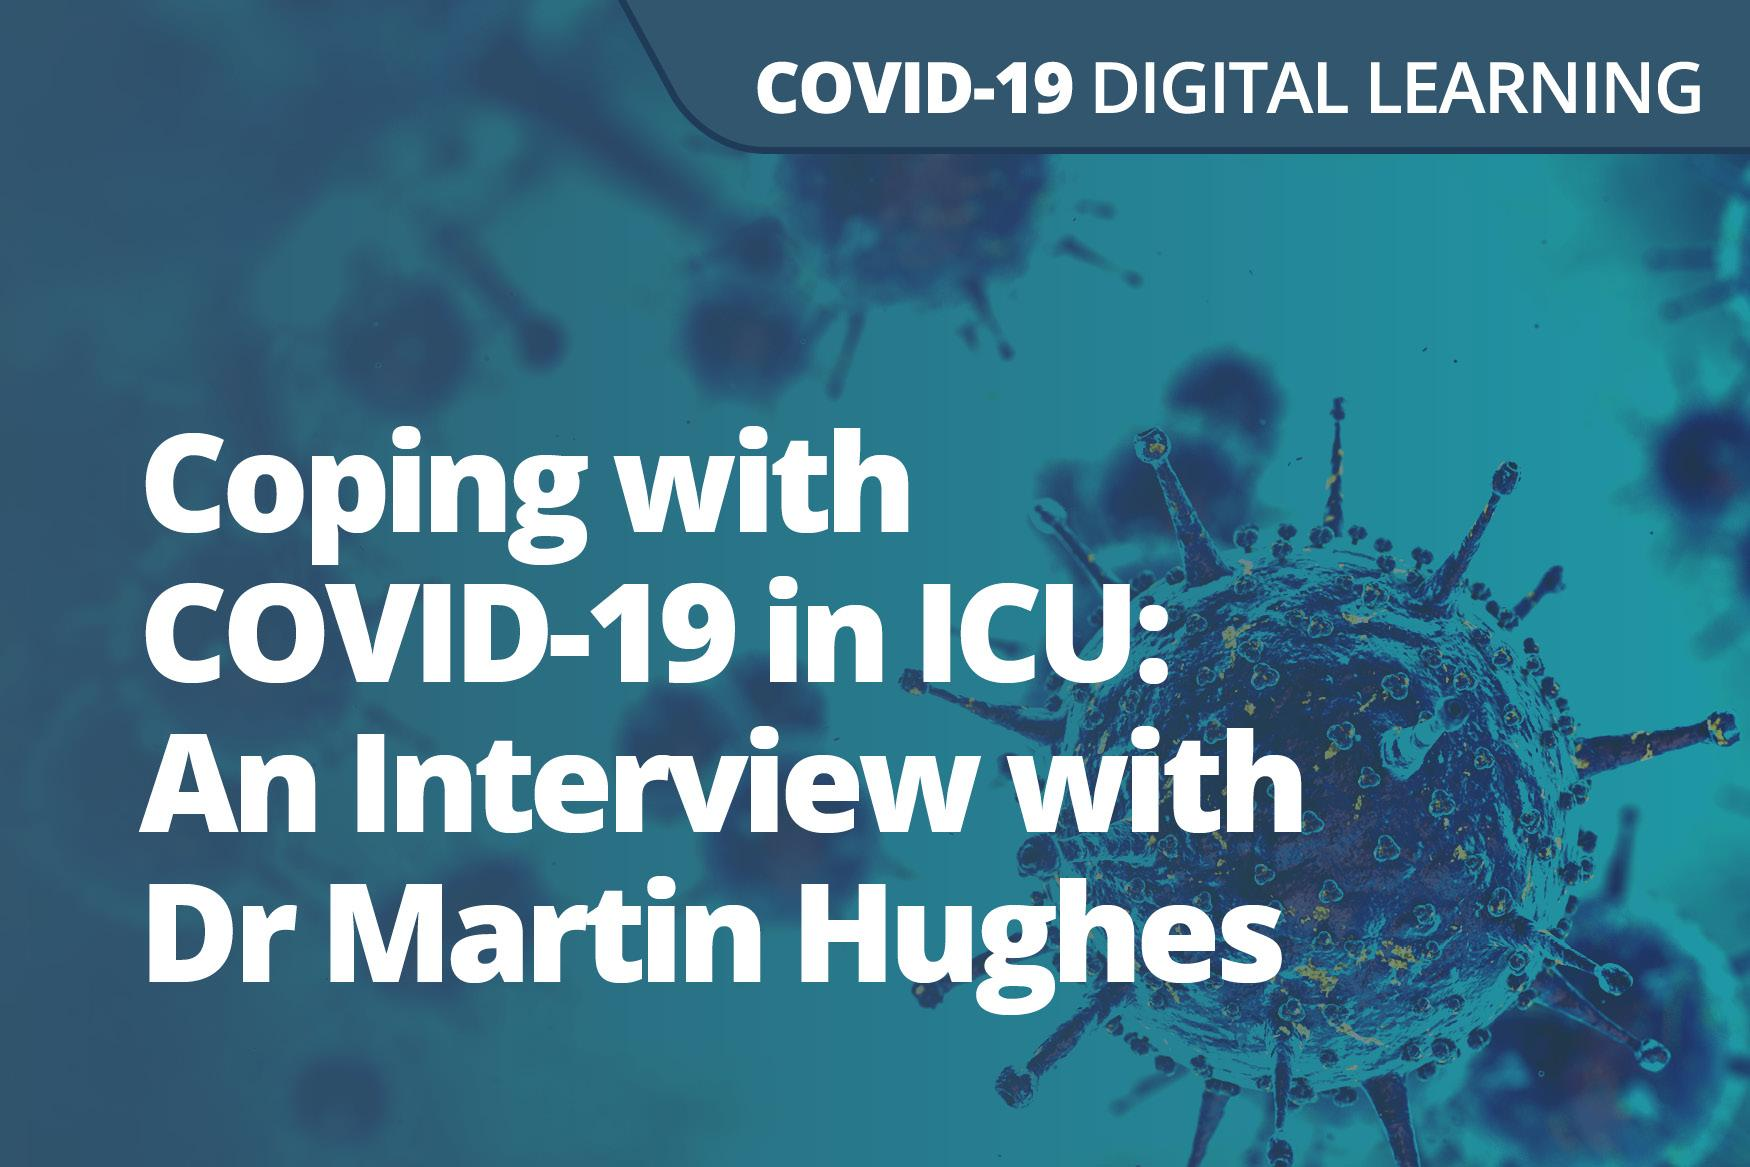 Coping with COVID-19 in ICU: An Interview with Dr Martin Hughes